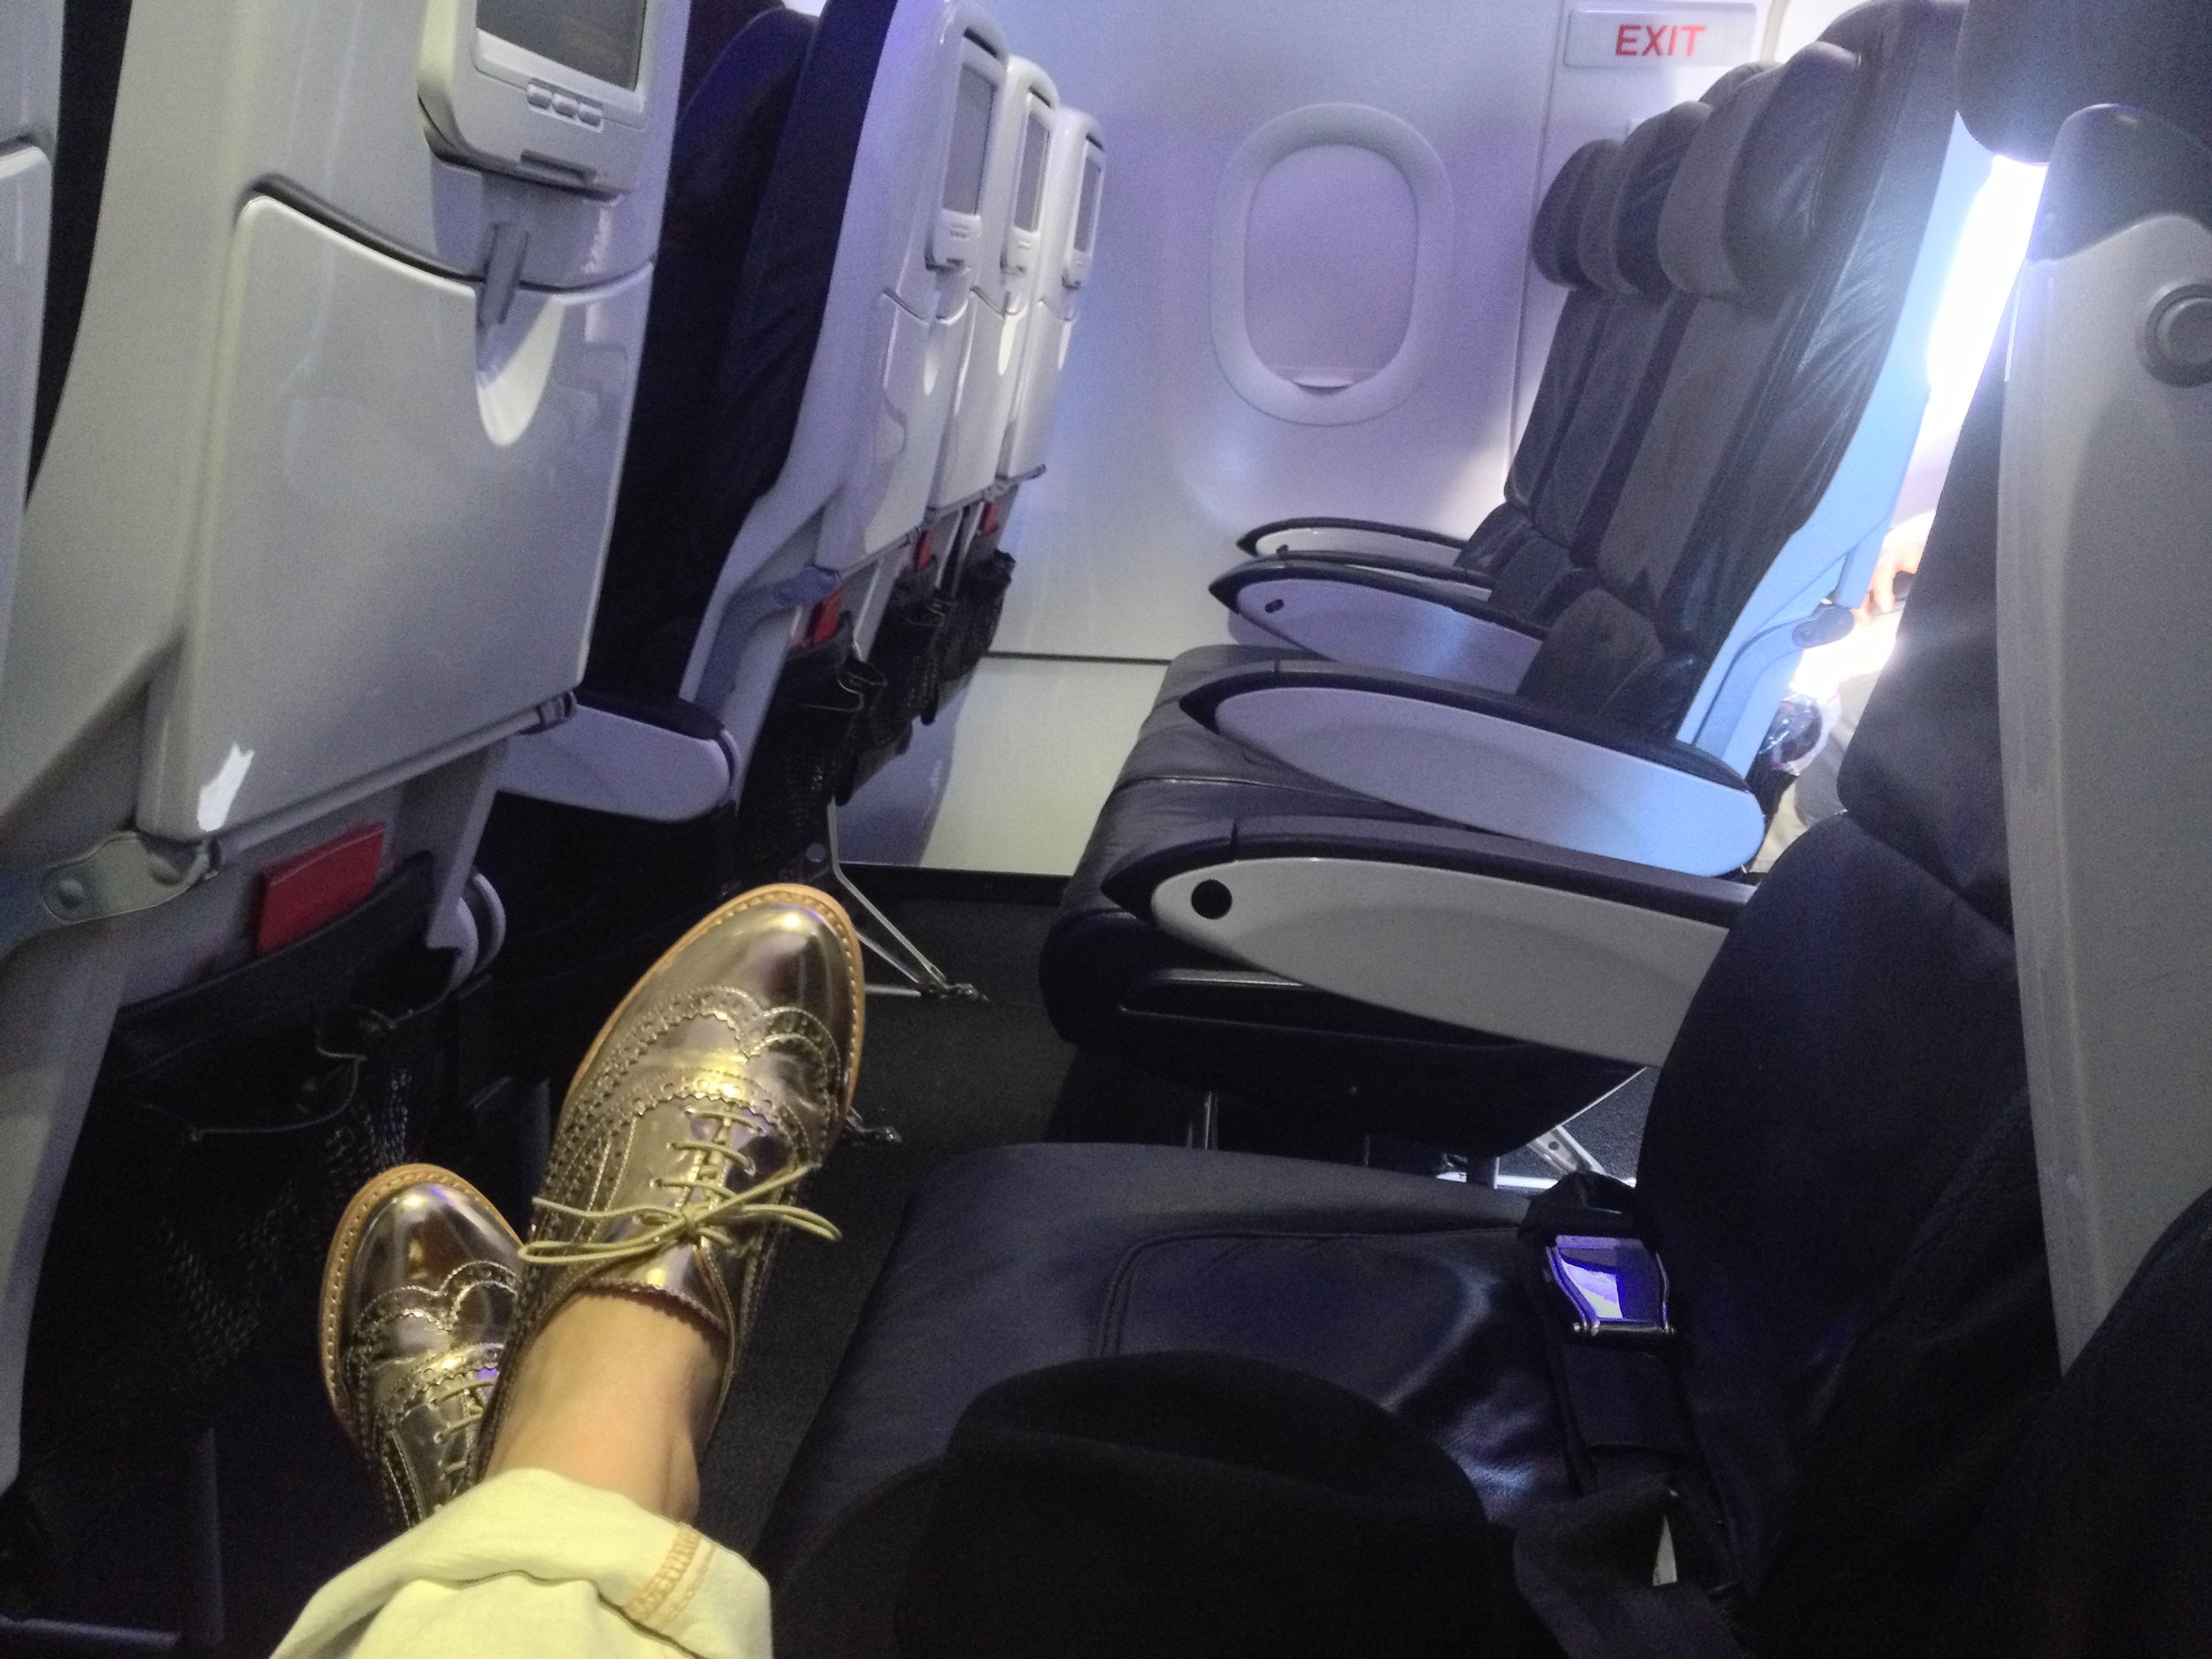 A row to myself is the biggest luxury ever.